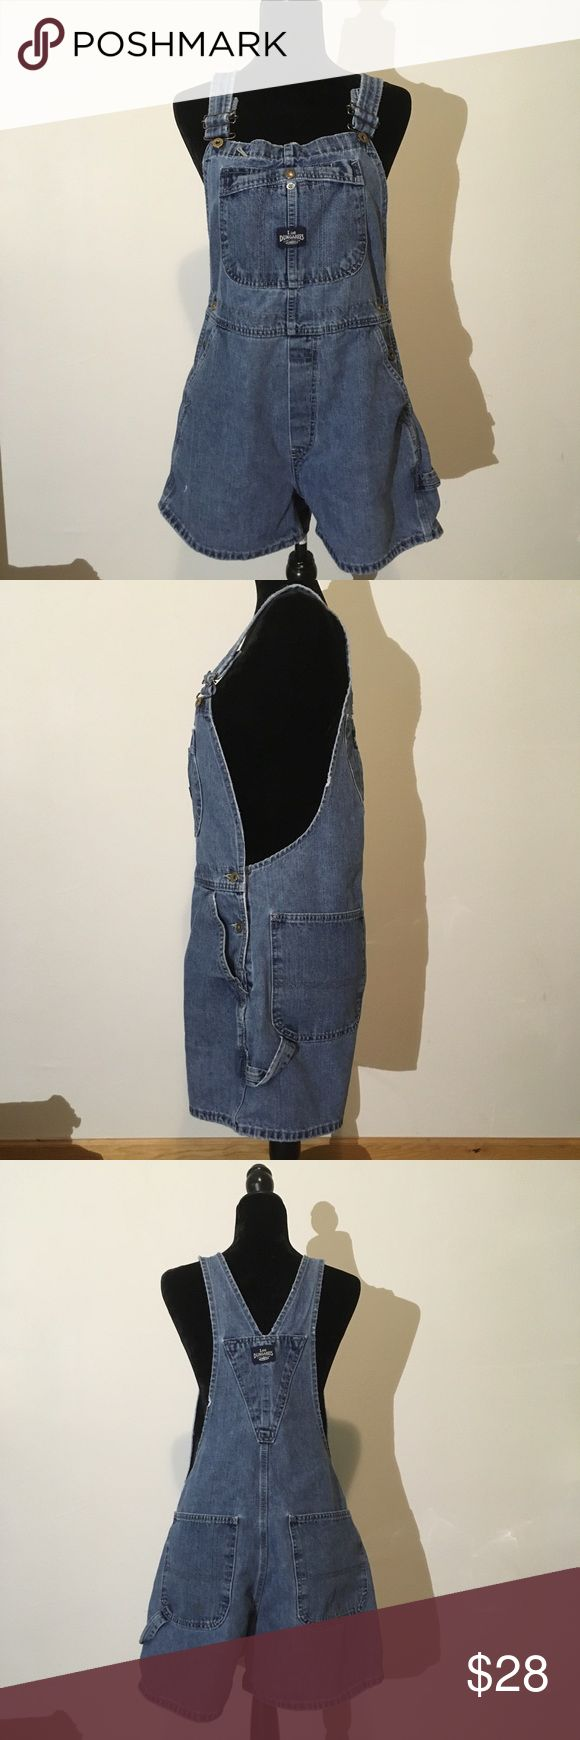 """Lee Dungarees vintage denim overall shorts Lee Dungarees vintage lightly distressed denim overall shorts 🌟Size- Women's L 🌟Flat Measurements- 16"""" waist 34.5"""" from top of shoulder to hem 3"""" inseam 🌟Material- tag is too worn to read, cotton and polyester blend 🌟Condition- Great used condition, lightly distressed. Small discoloration on left back pocket, pictured Lee Dungarees Jeans Overalls"""